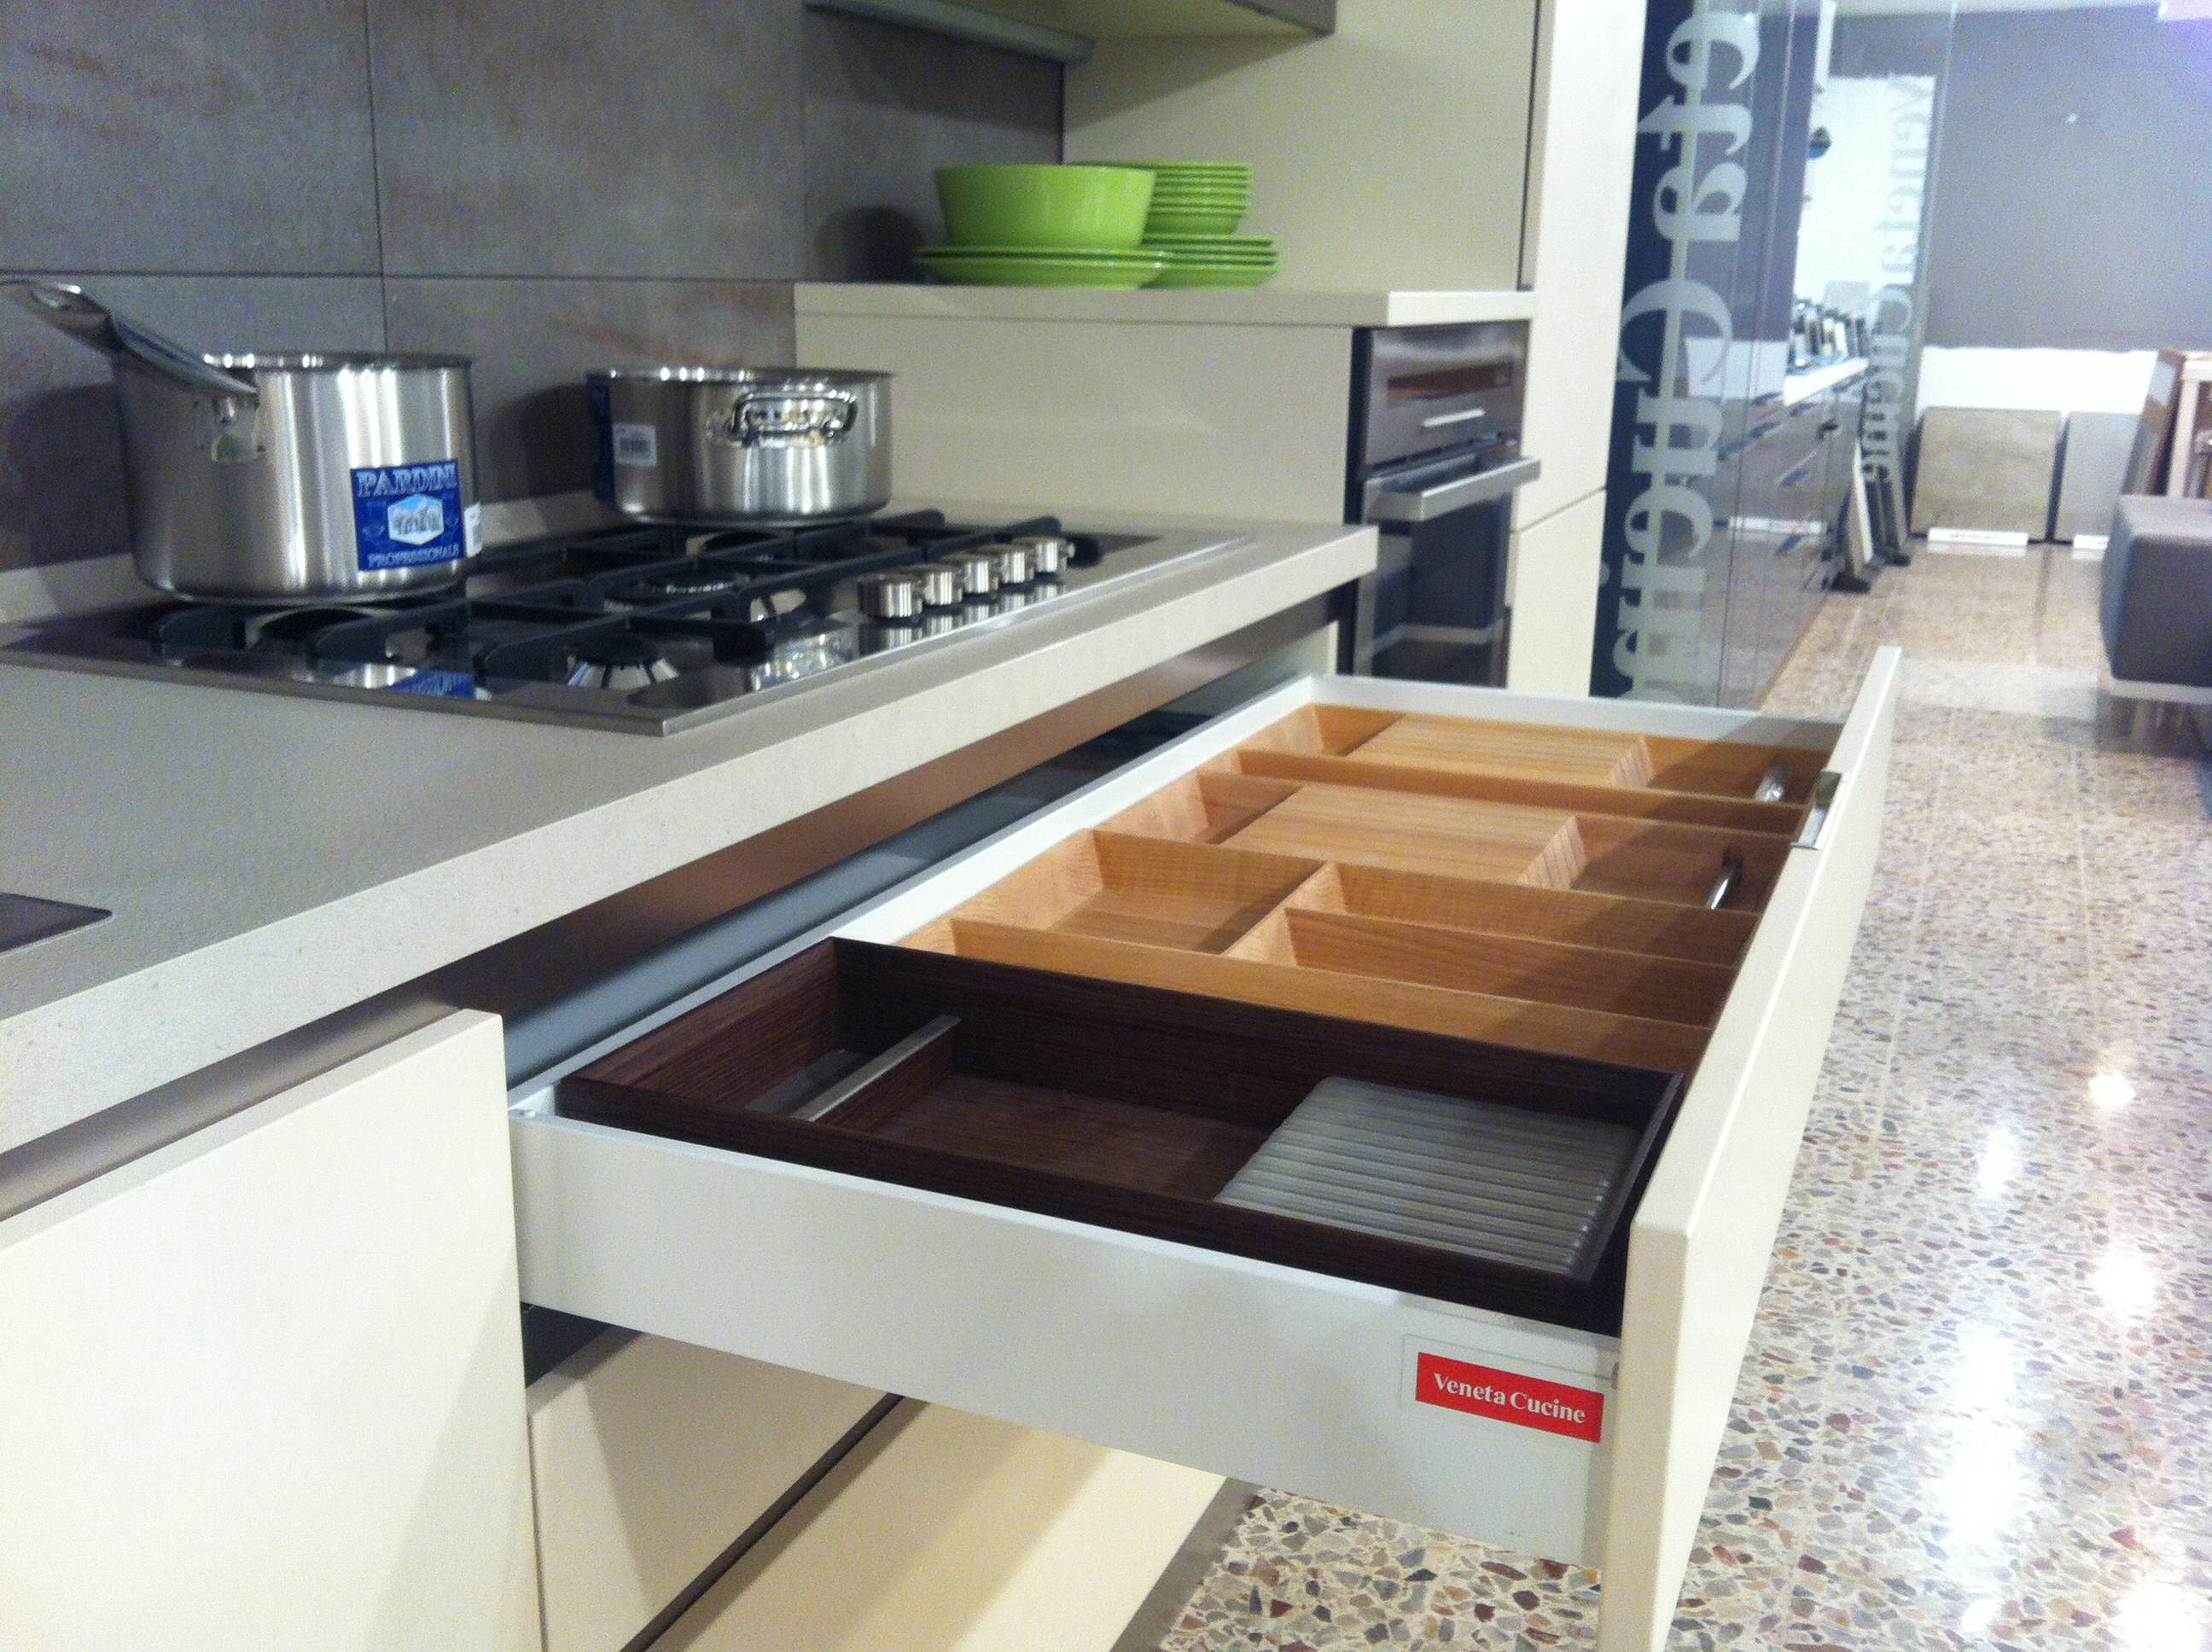 Stunning Veneta Cucine Catalogo Accessori Contemporary - harrop.us ...